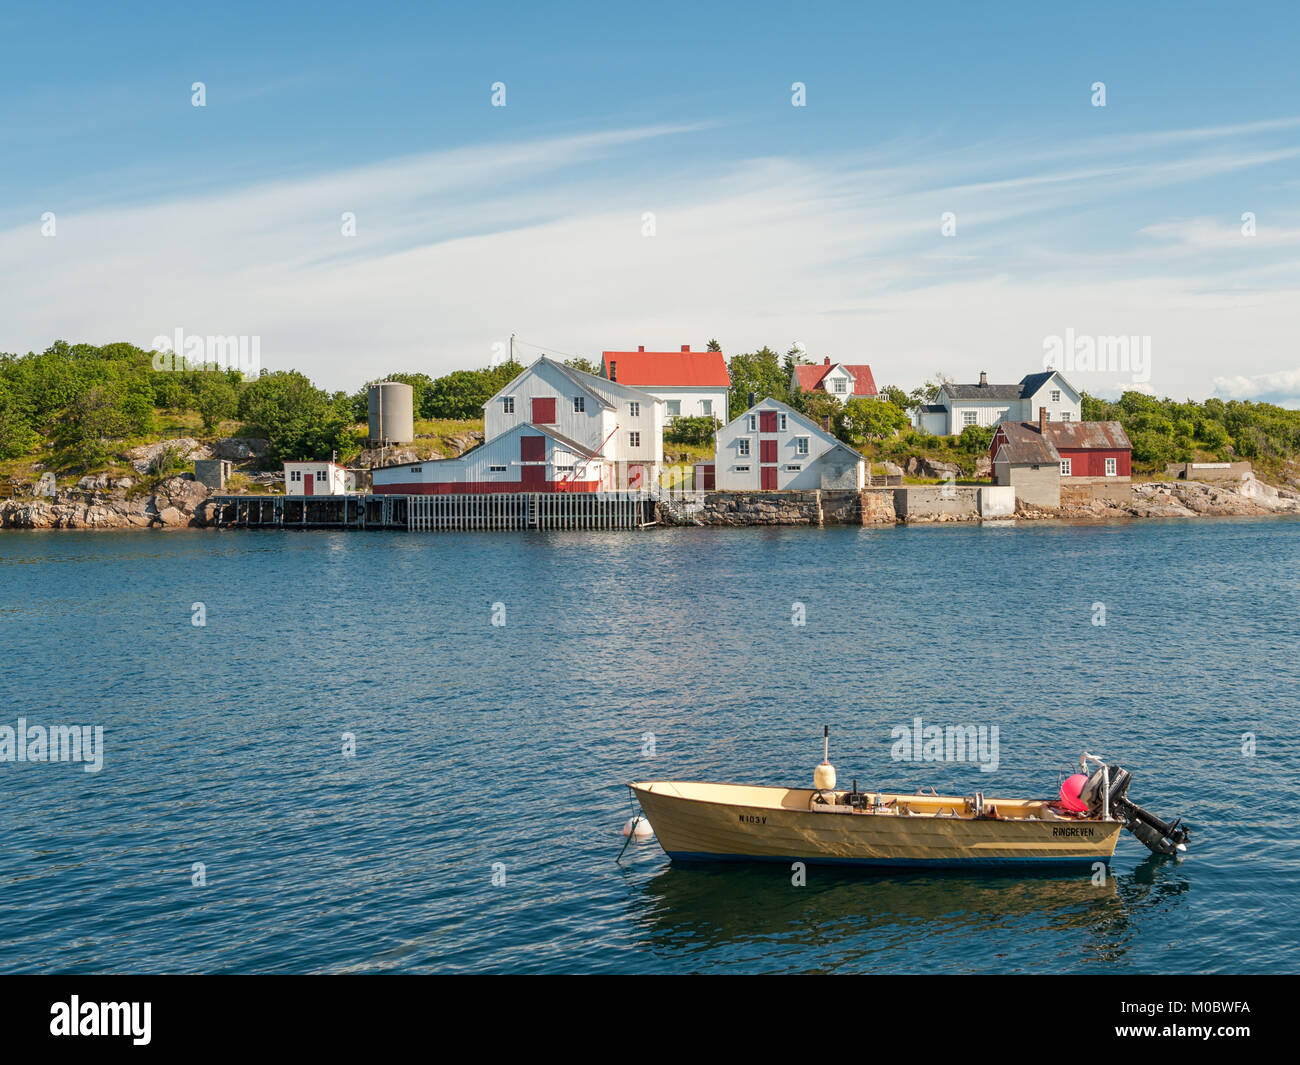 The harbor during summer in Henninsvaer. This is a popular tourist destination and a beautiful fishing village at - Stock Image